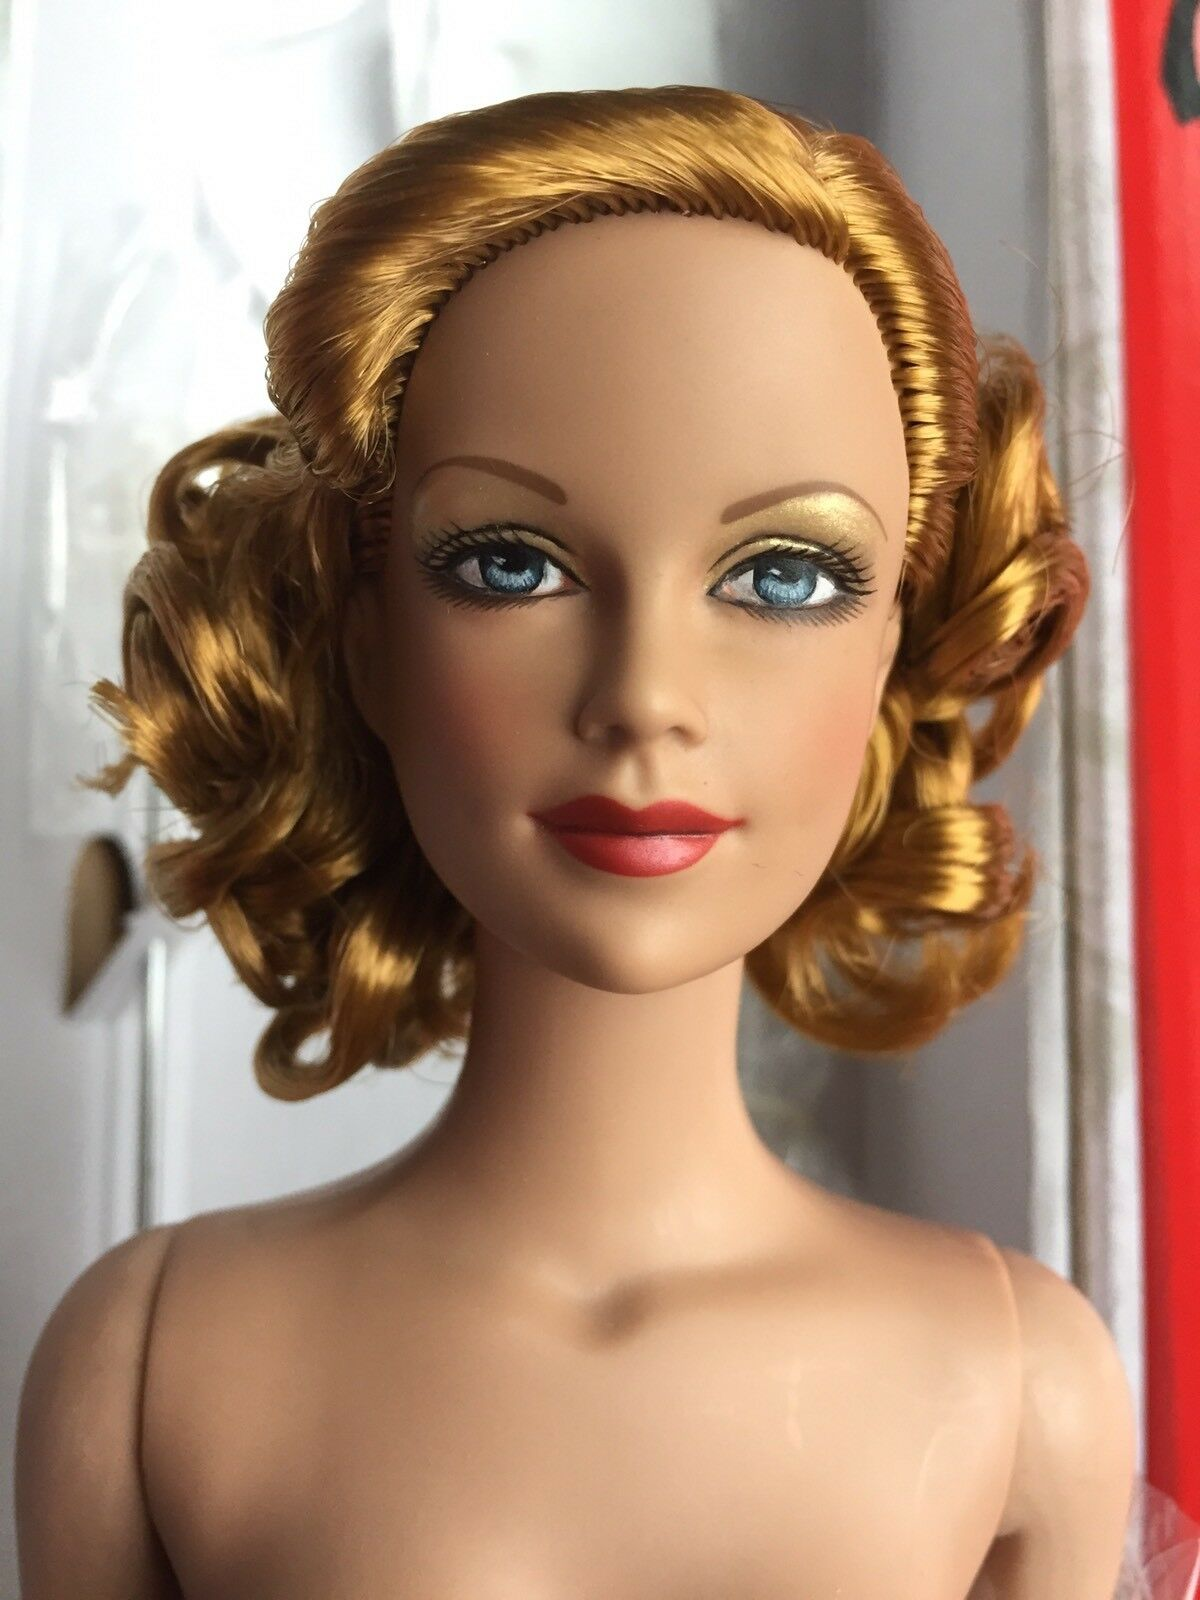 Tonner Tyler 16  NUDE 24KT BRENDA STARR Fashion Doll With Box + Stand  BA BODY